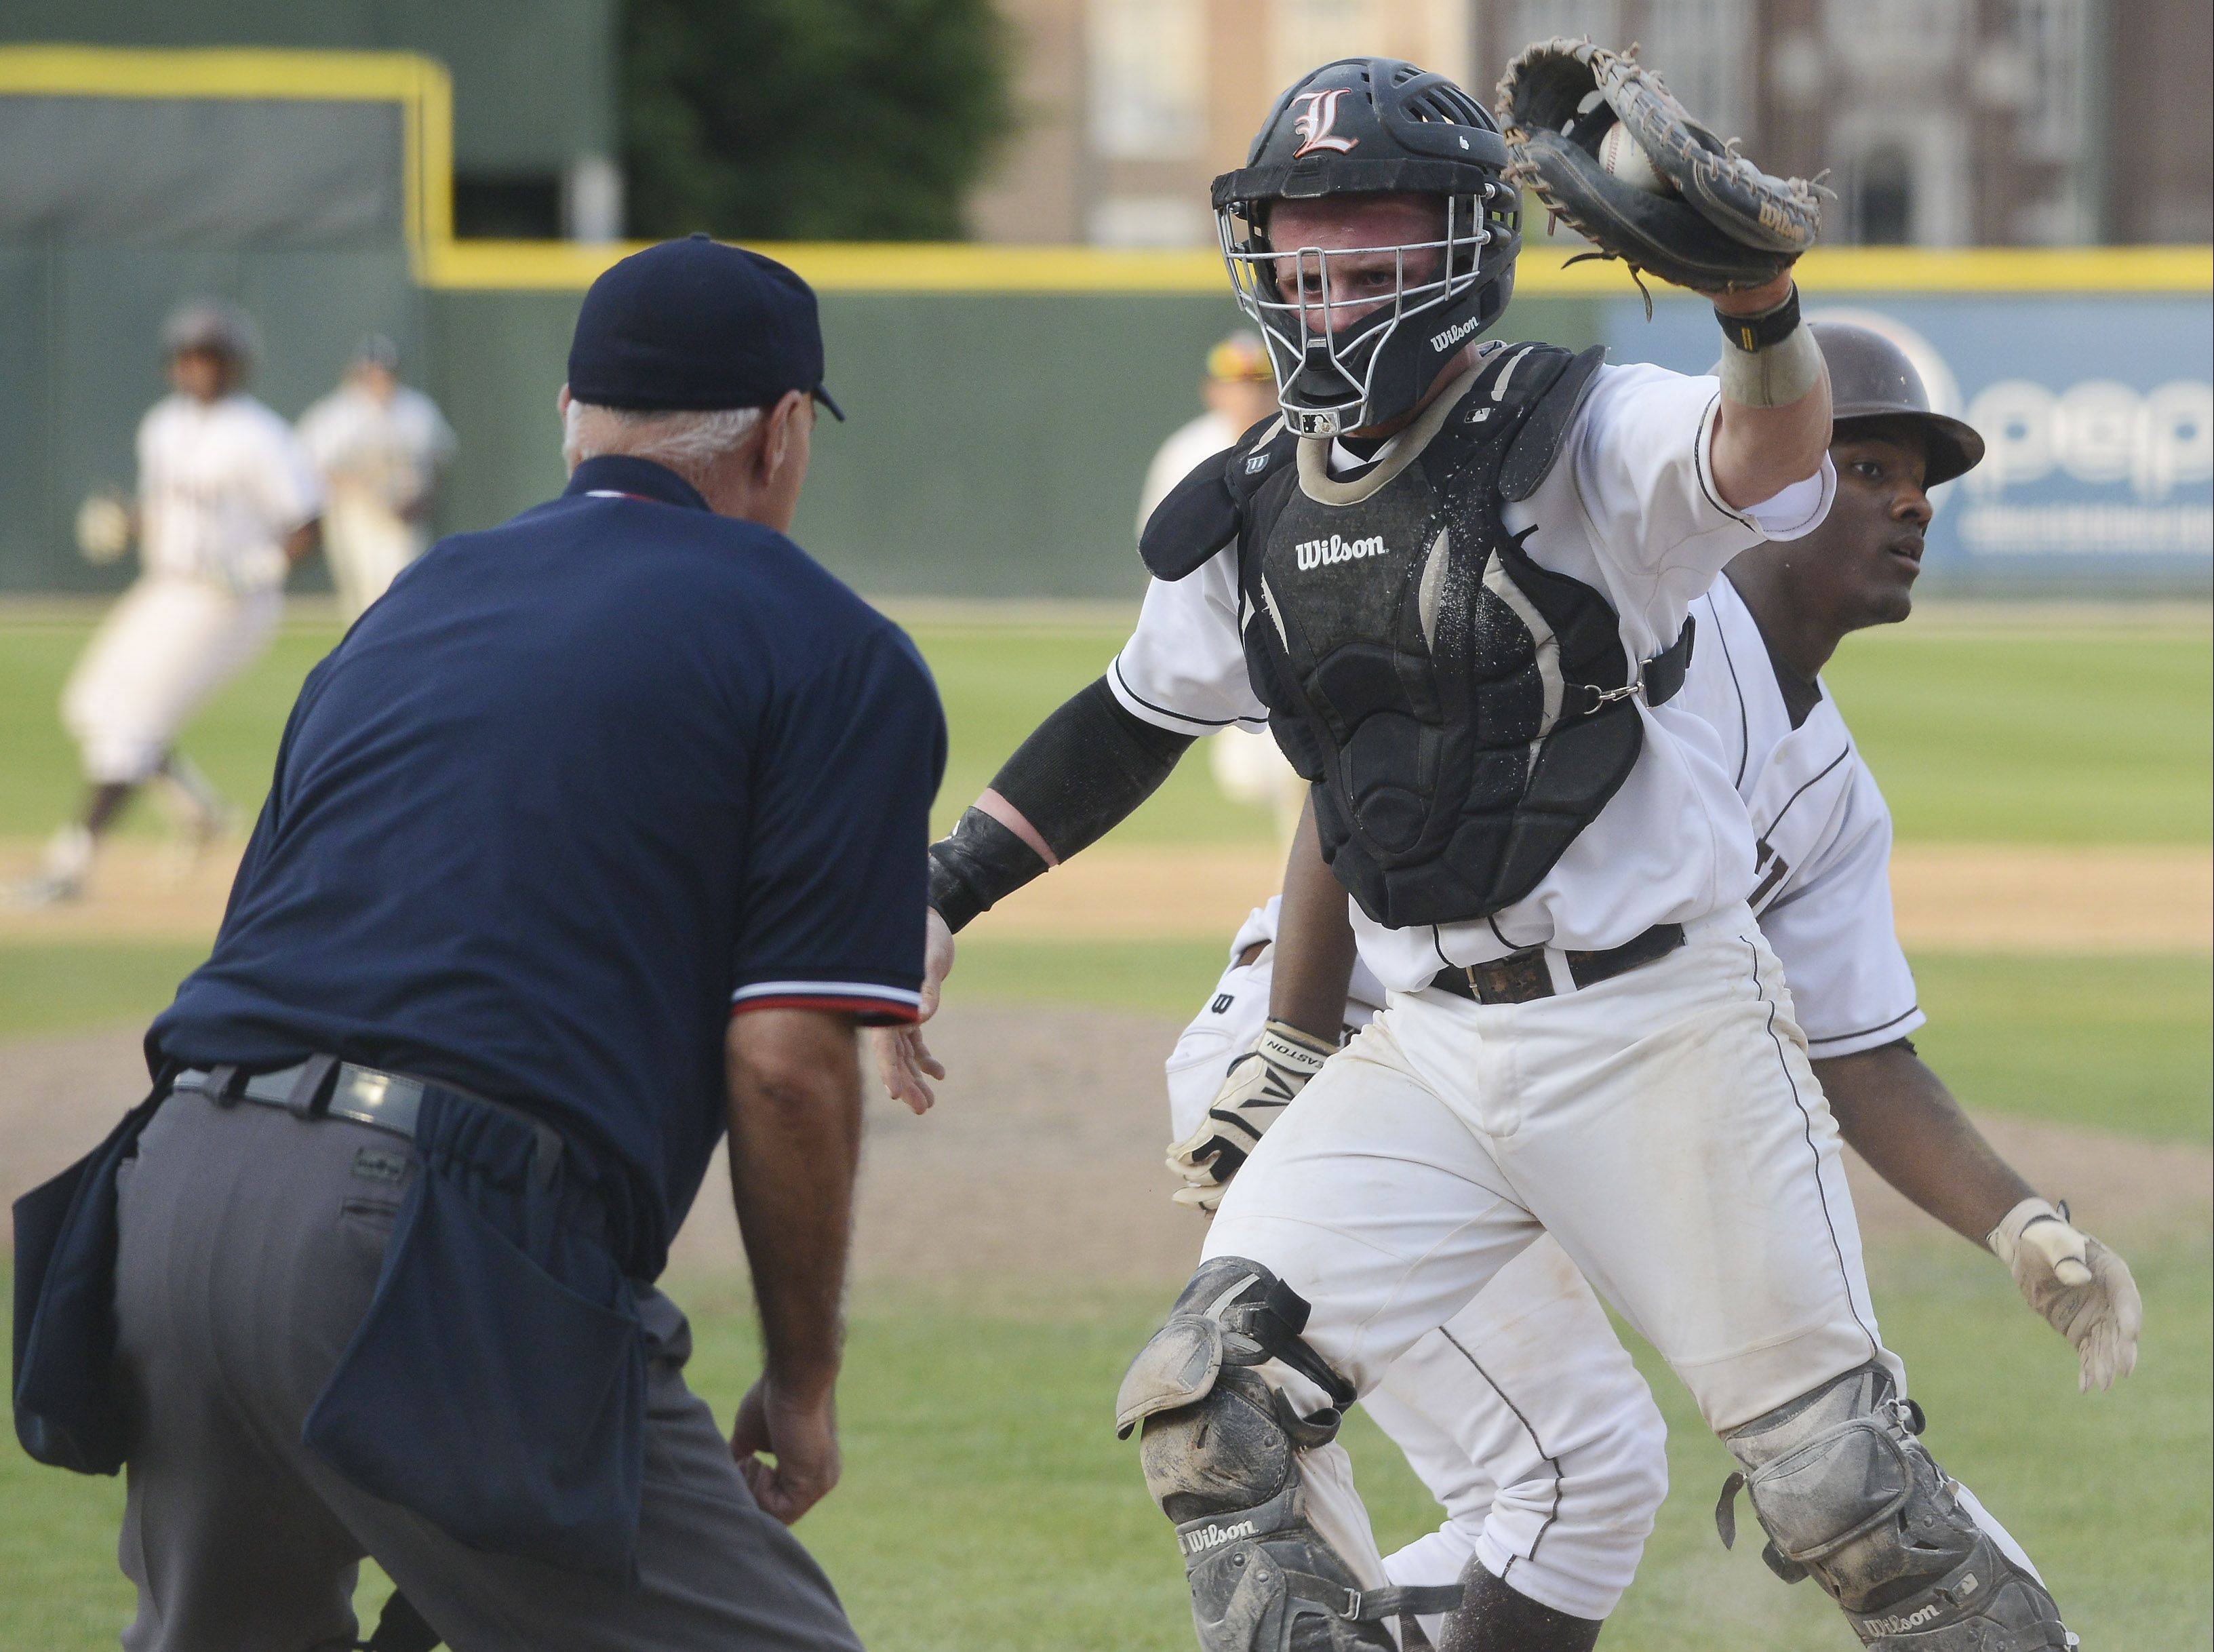 Libertyville catcher Evan Skoug holds up the ball for the umpire after tagging out Mt. Carmel's Joshua Stowers on an attempted steal of home in the seventh inning.